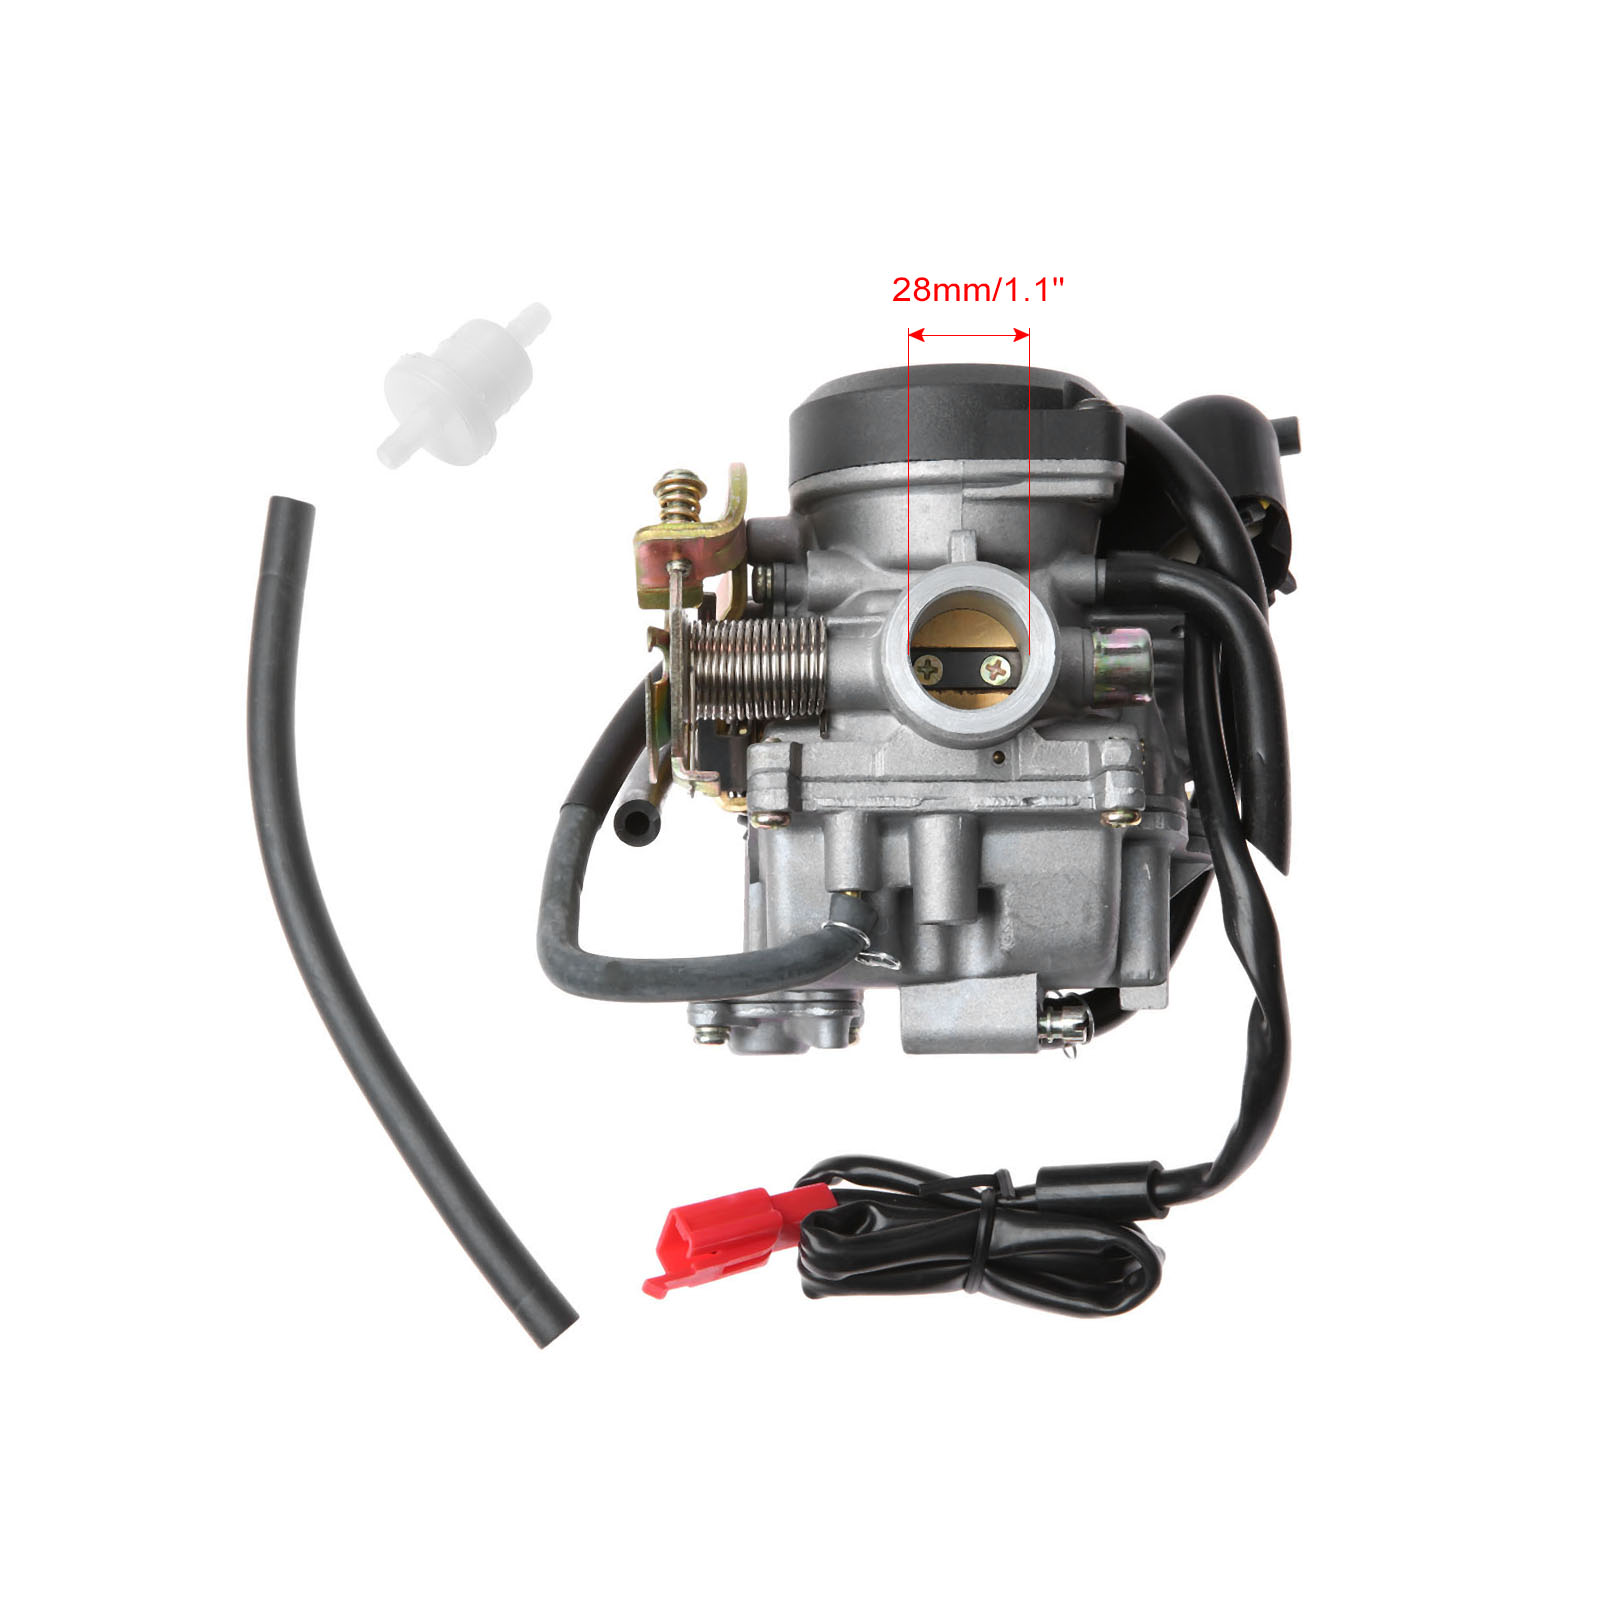 Motorcycle Carburetor 28mm Carb For 4 Stroke GY6 49cc 50cc Engine Electric Choke ATV Dirt Bike Pit Bike Carburador Carburateur original 26mm mikuni carburetor for cbt125 cb125t cbt250 ca250 carburador de moto